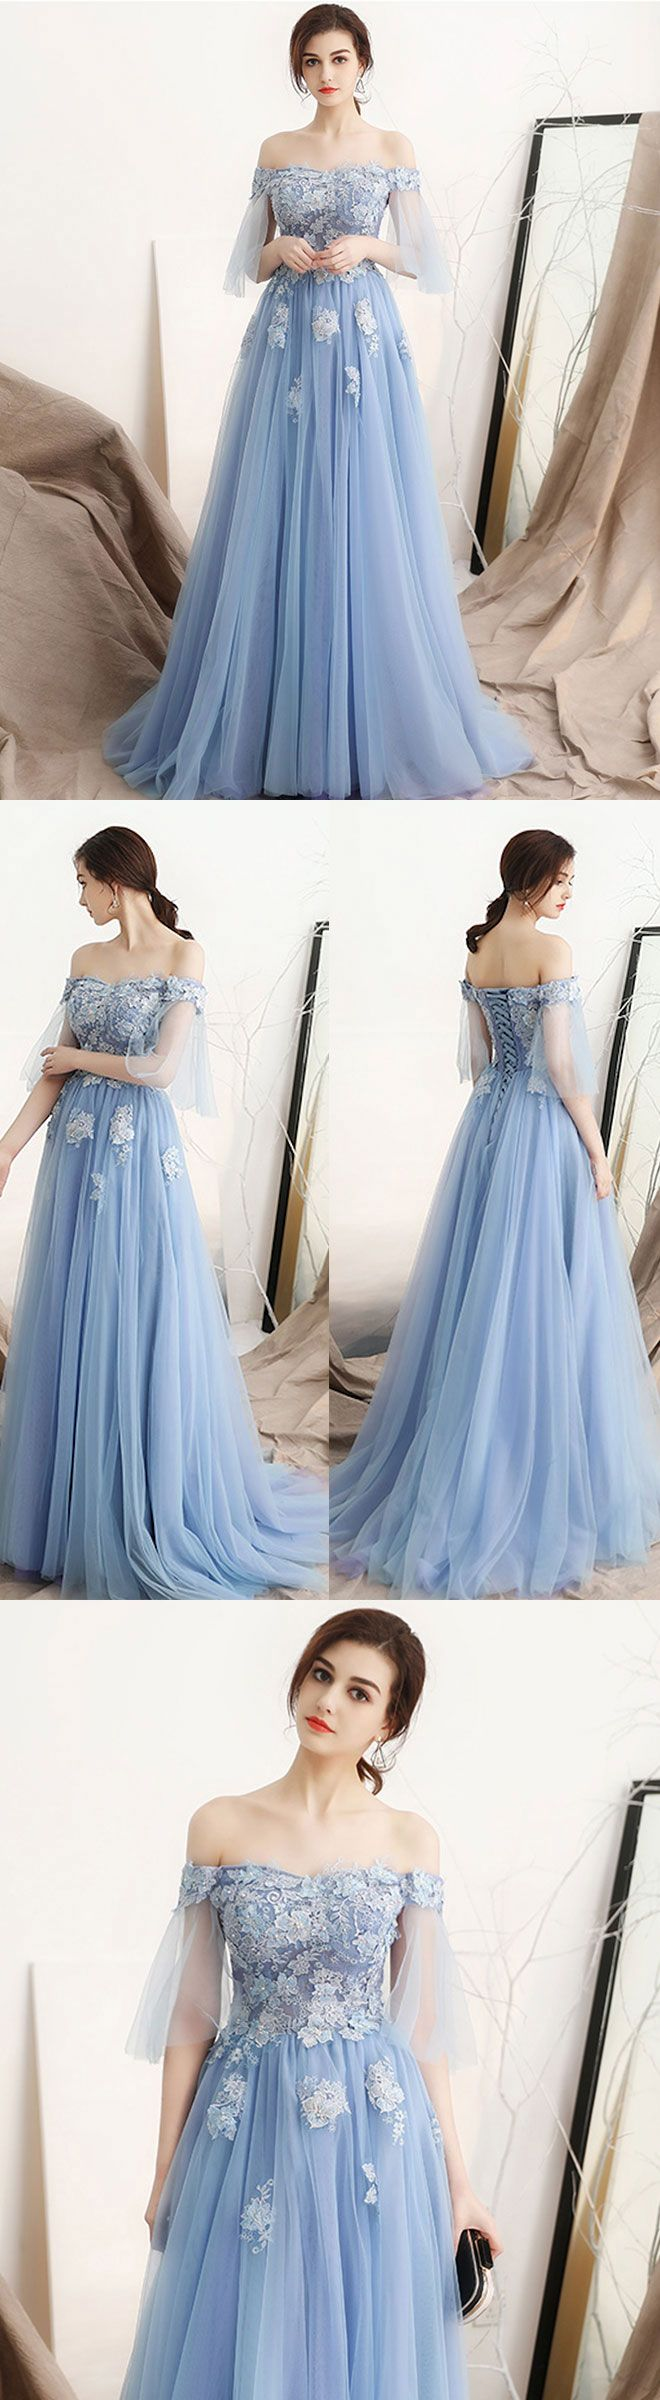 48 best Prom Gowns/Dresses images on Pinterest | Party fashion ...